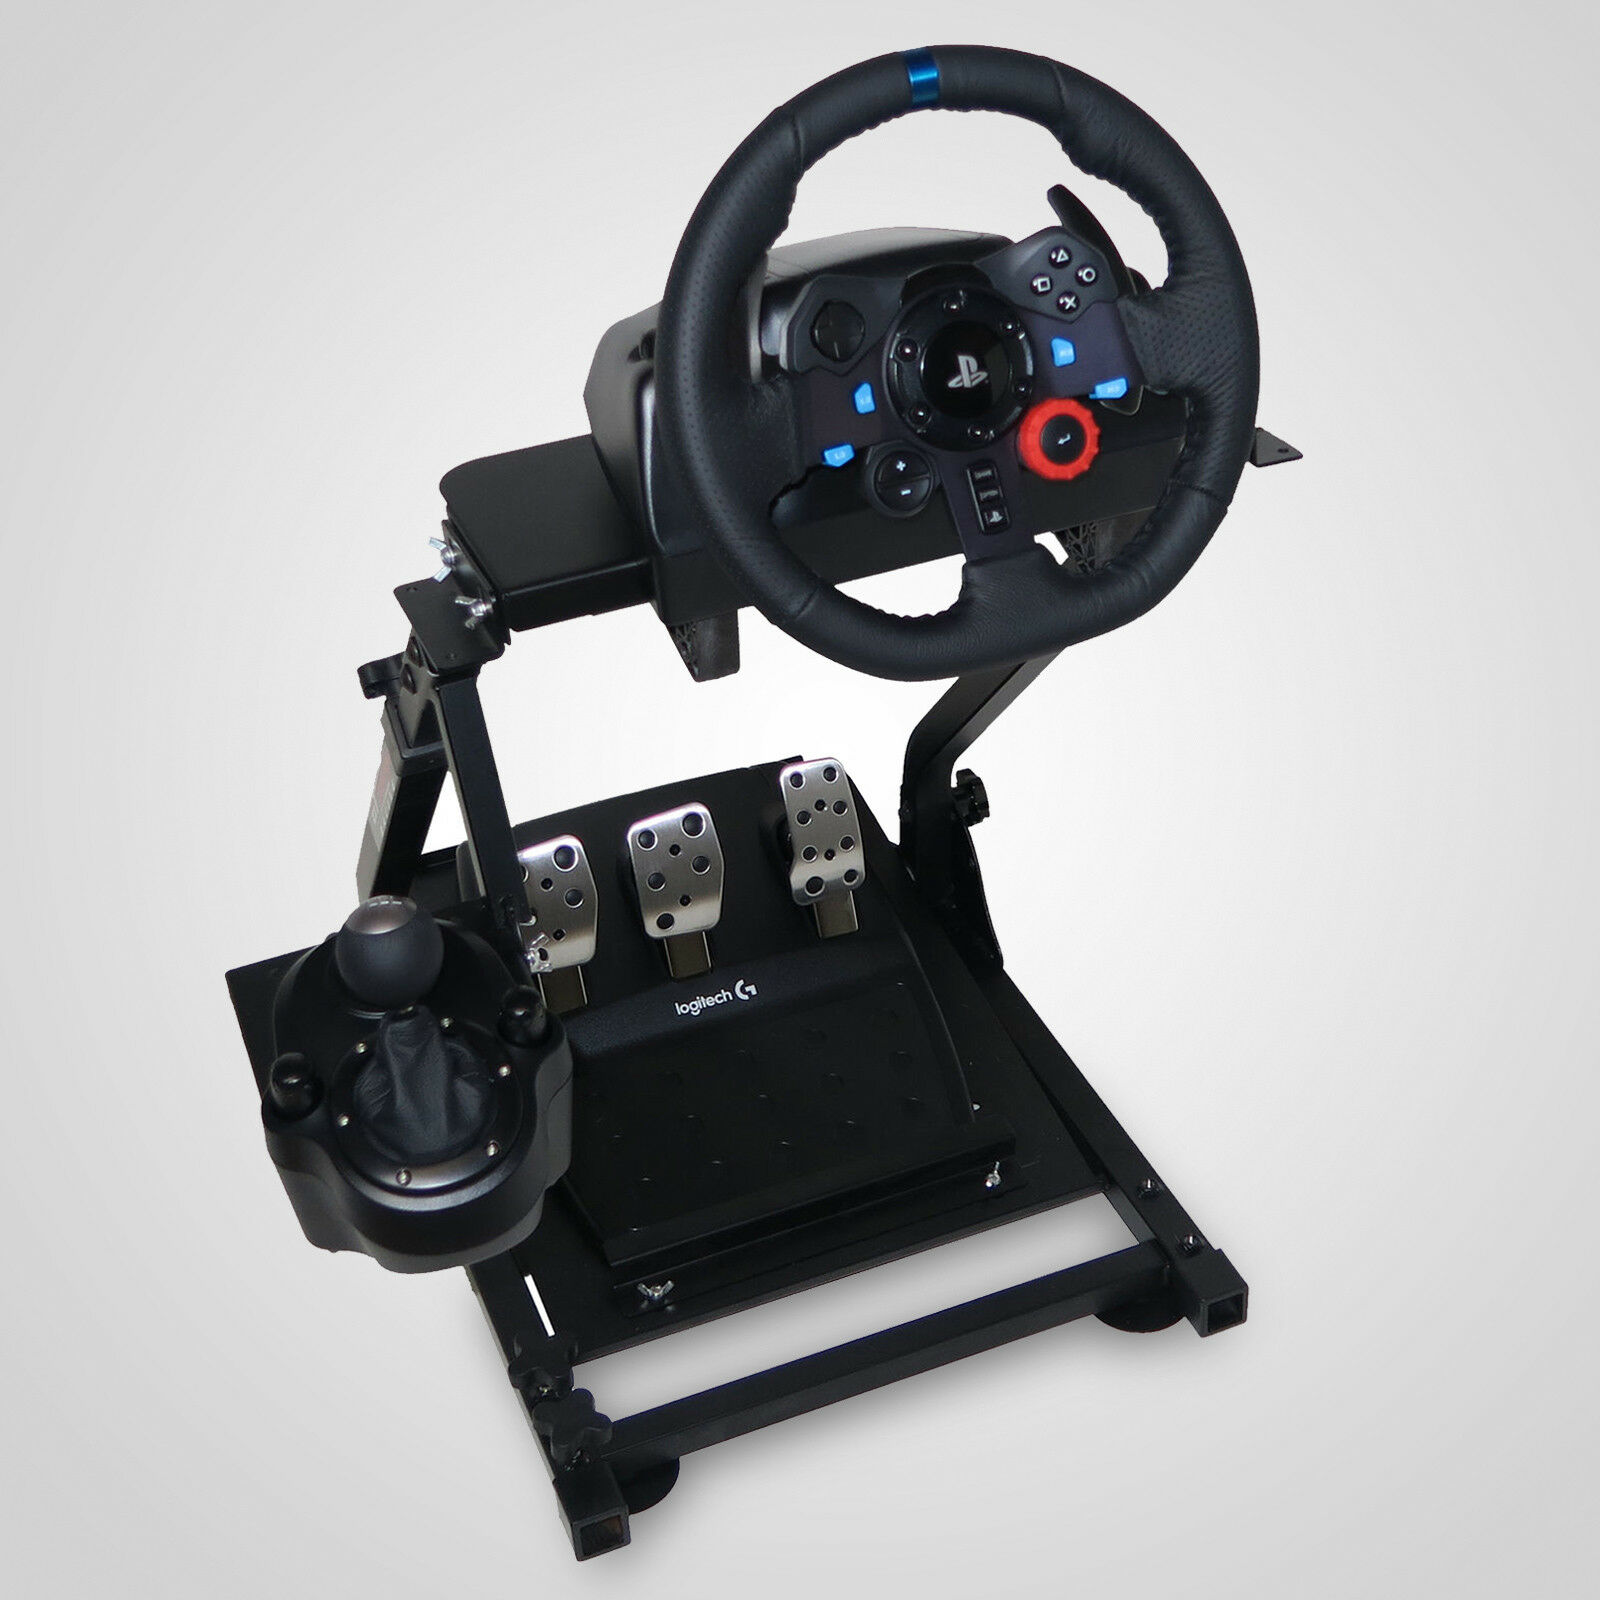 2 Pieces High Quality Racing Simulator Steering Wheel Stand Logitech G29 Thrustmaster T300RS Unique Flexibility